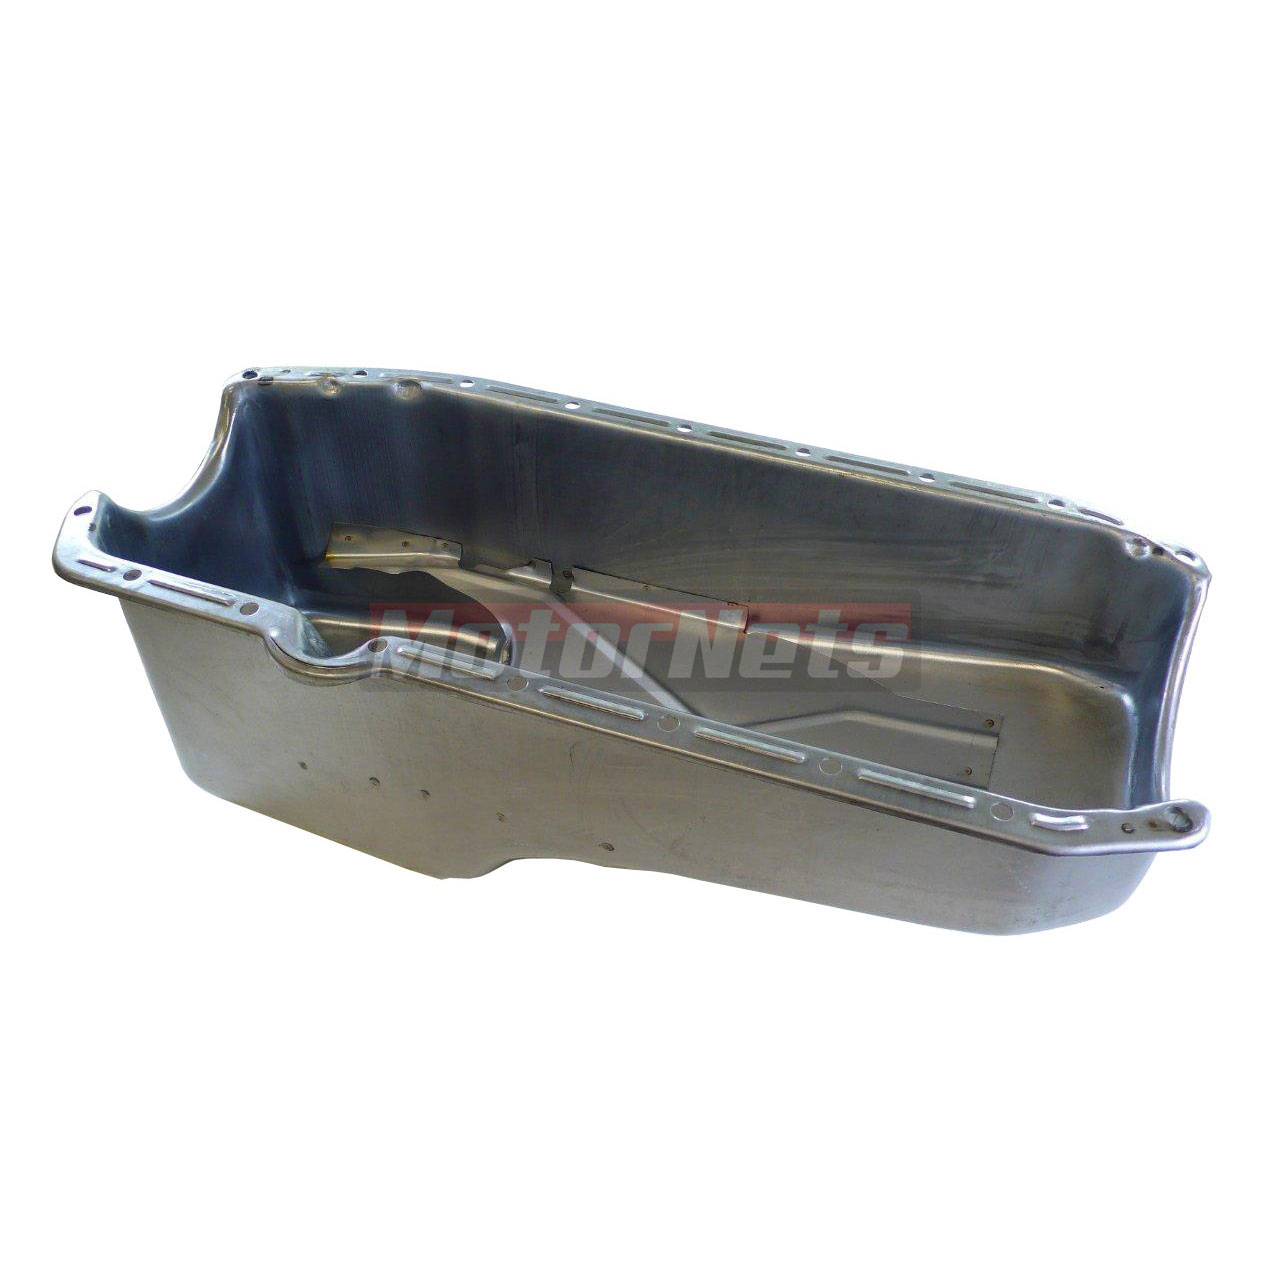 chevy 350 oil filter robertshaw thermostat 9610 wiring diagram engine gasket kits free image for